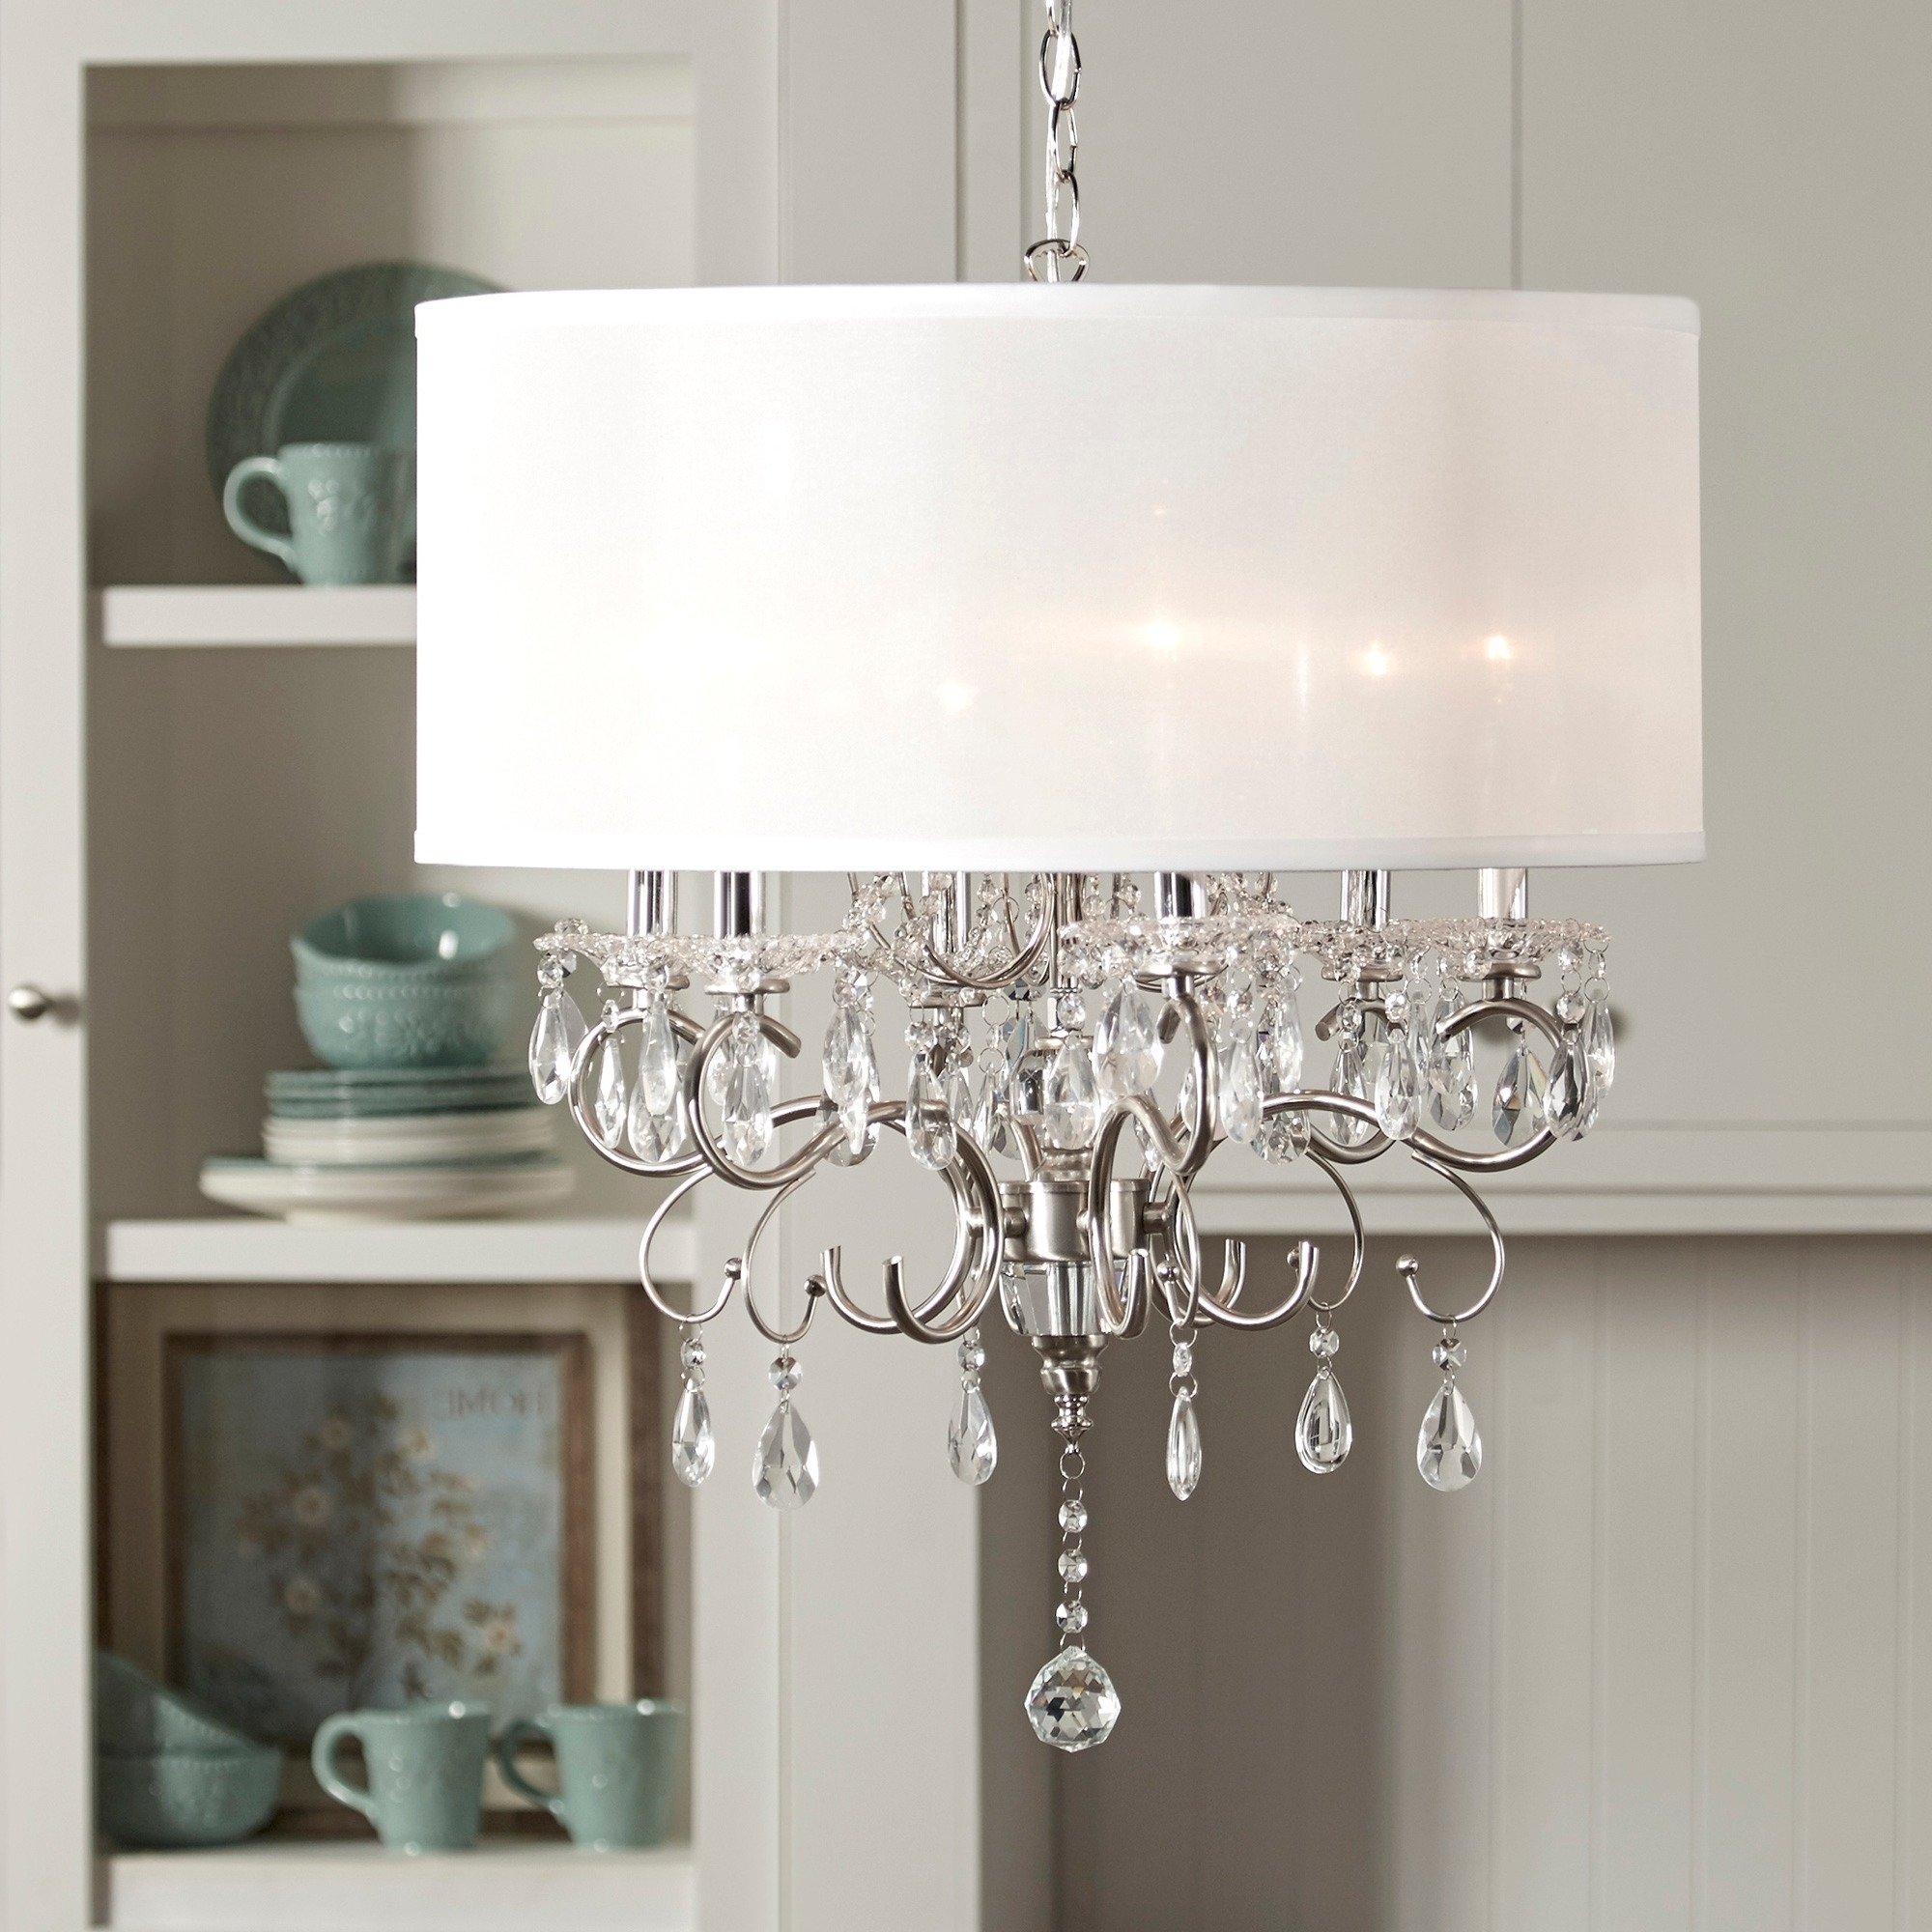 Chandelier Light Shades For Latest Excellent Light Shades Of Grey Html Purple Names Shade Blue (View 11 of 20)